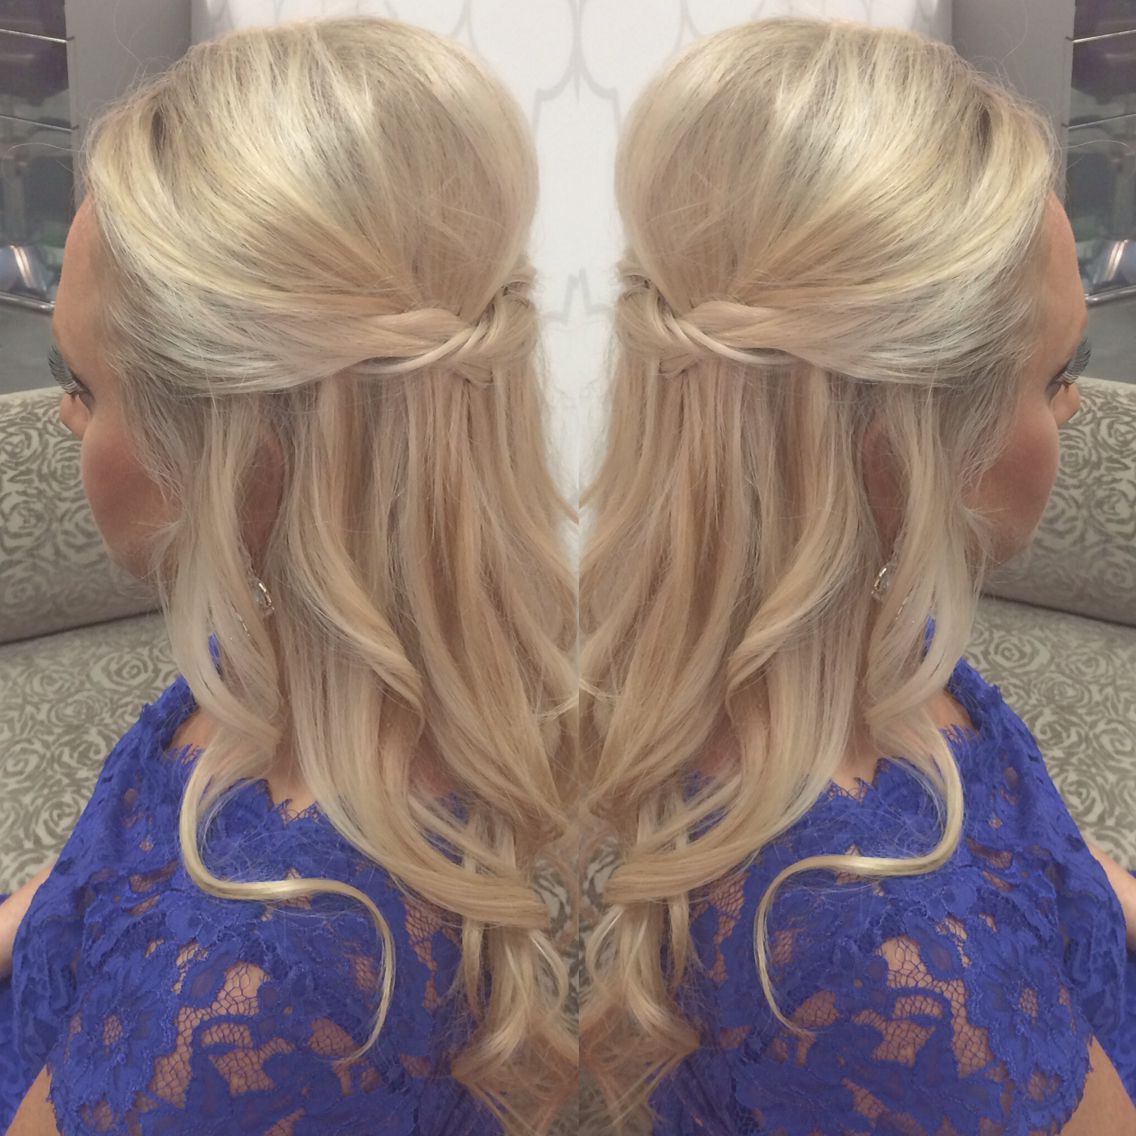 Half Updo Twisted Braid Loose Curls Blonde Wedding Party Pertaining To Most Recently Released Loose Highlighted Half Do Hairstyles (View 4 of 20)